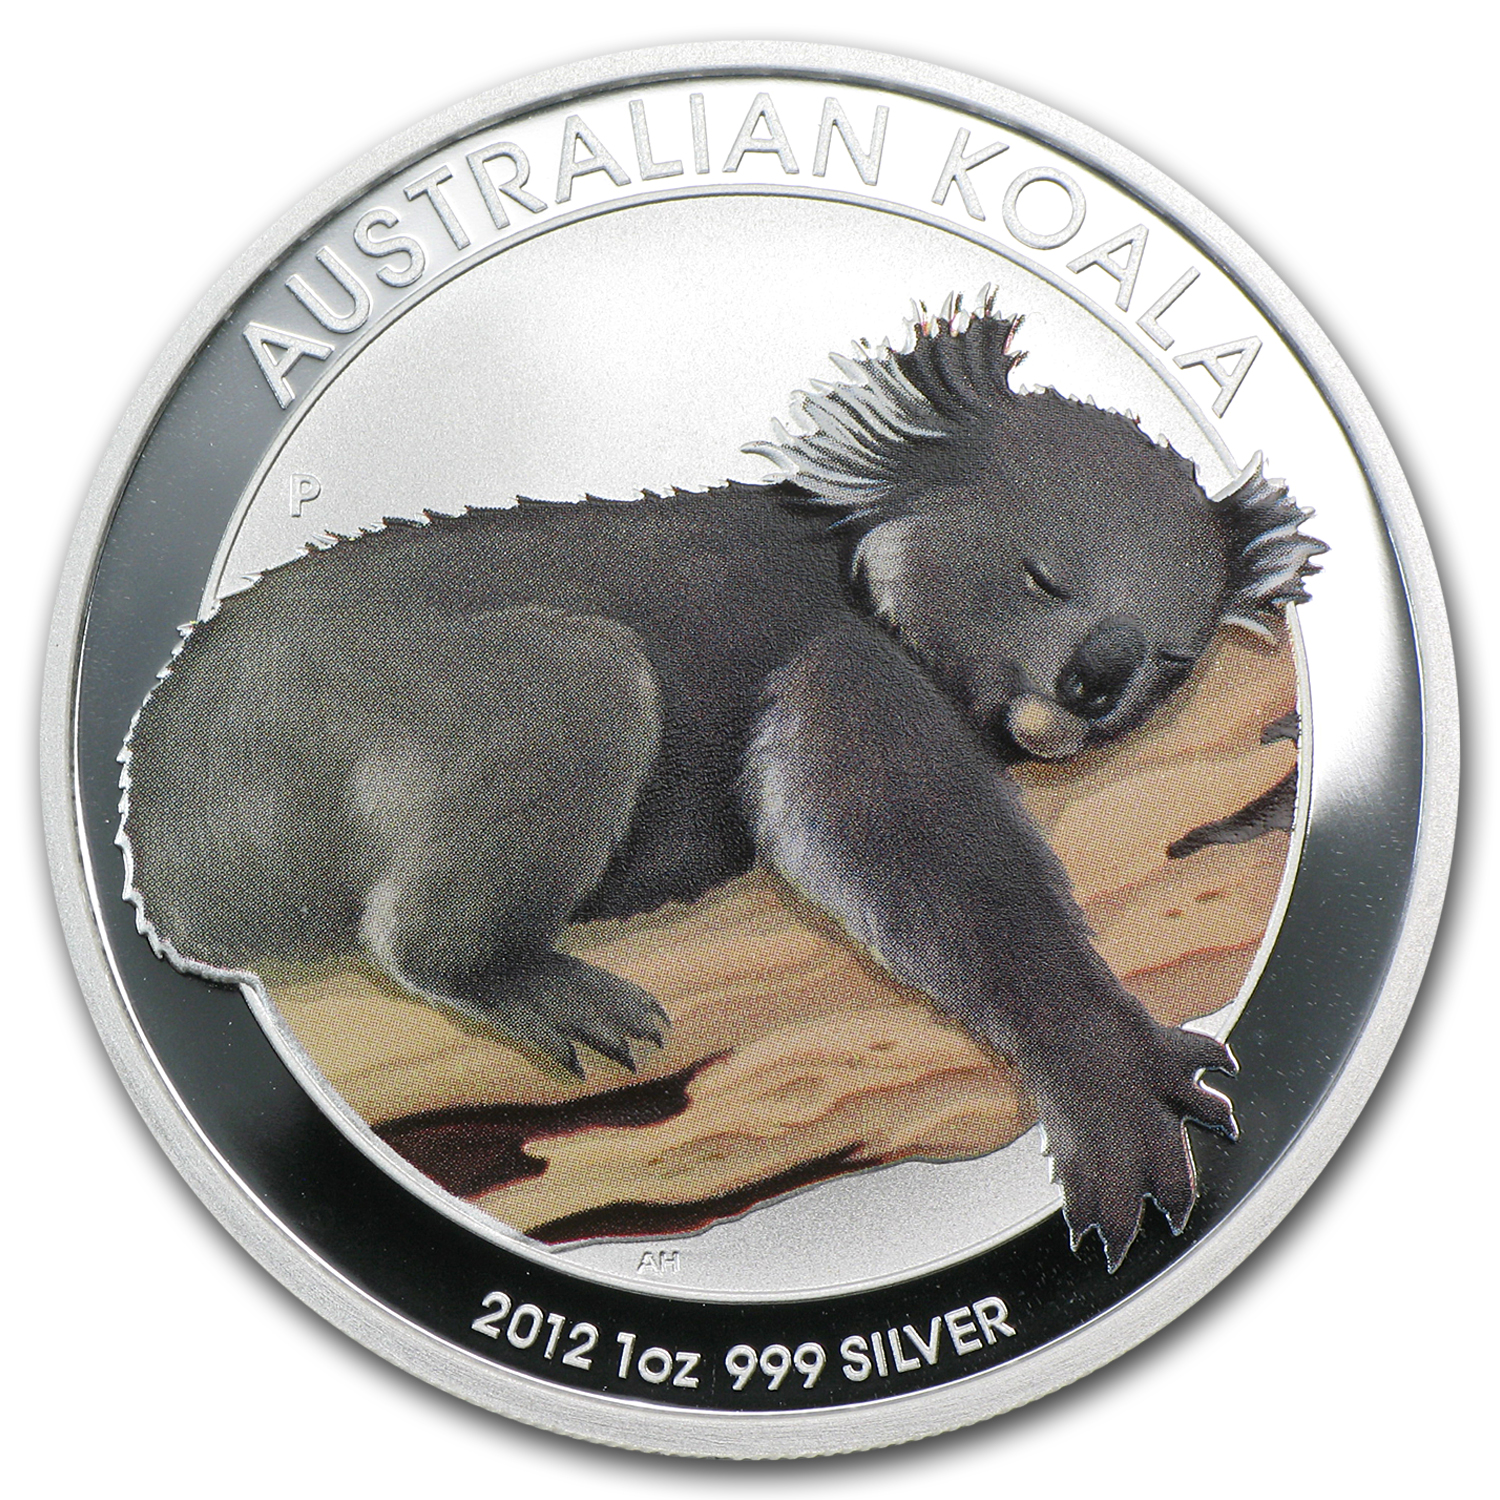 2012 Australia 1 oz Silver Koala BU (Colorized, In Capsule)